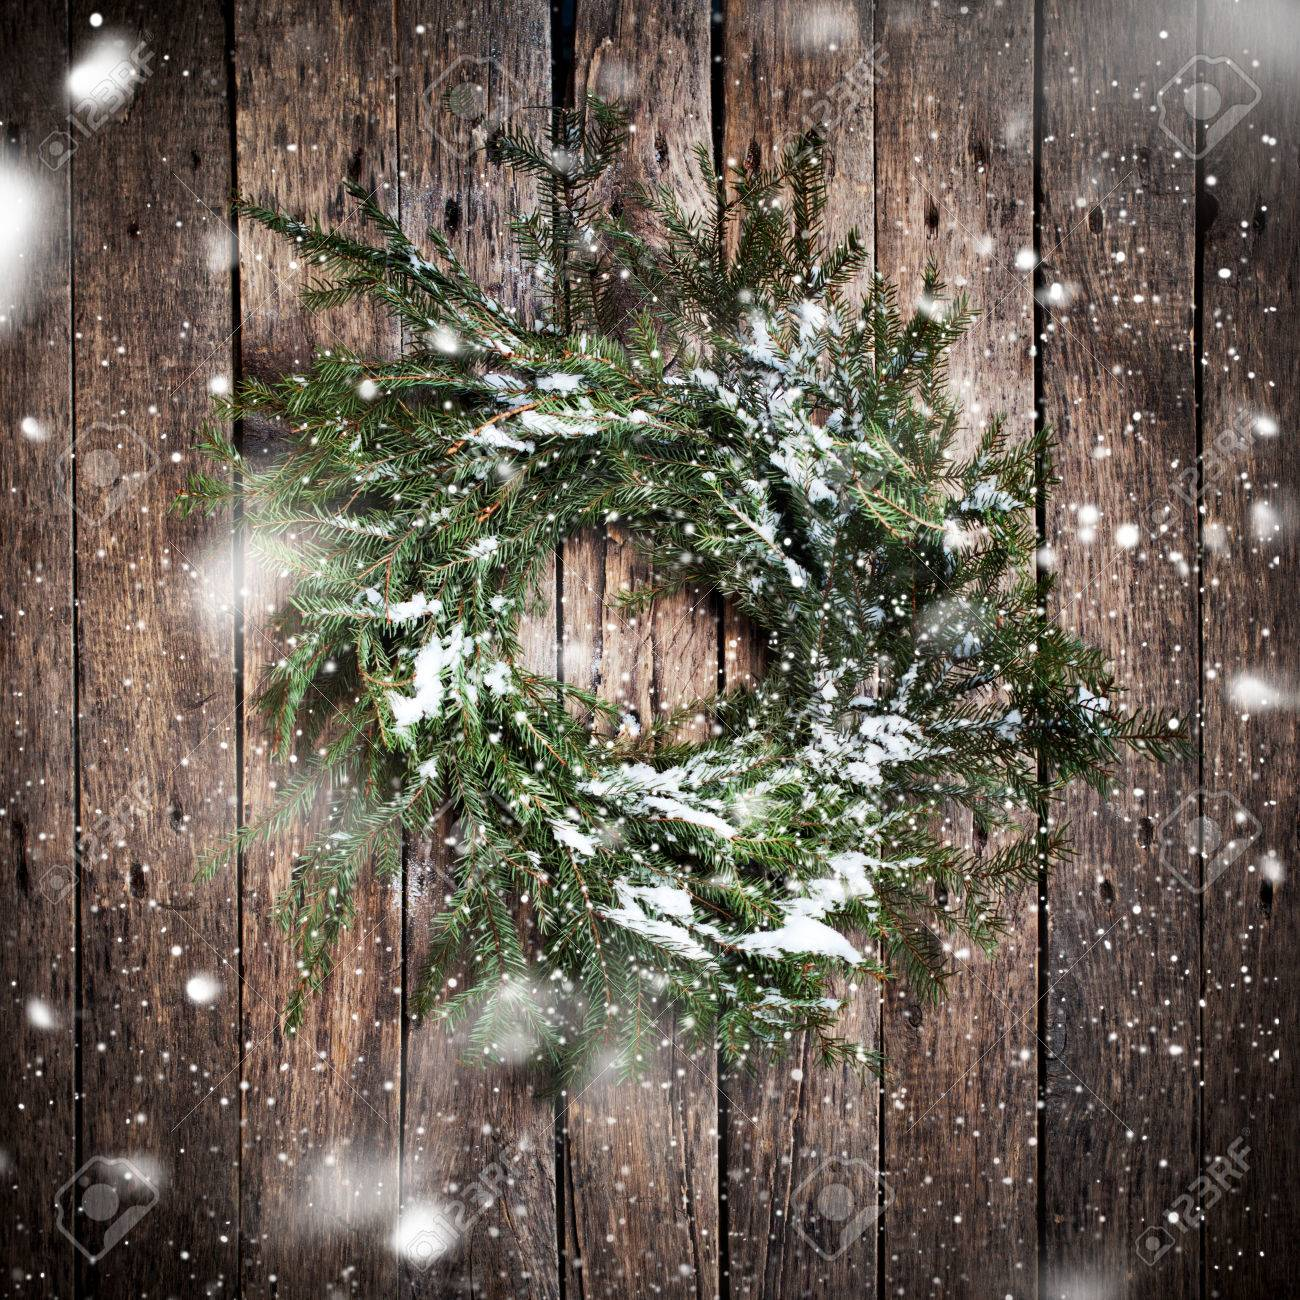 Green Natural Wreath on Wooden Background with drawing Falling Snow. Vintage Style - 46933221